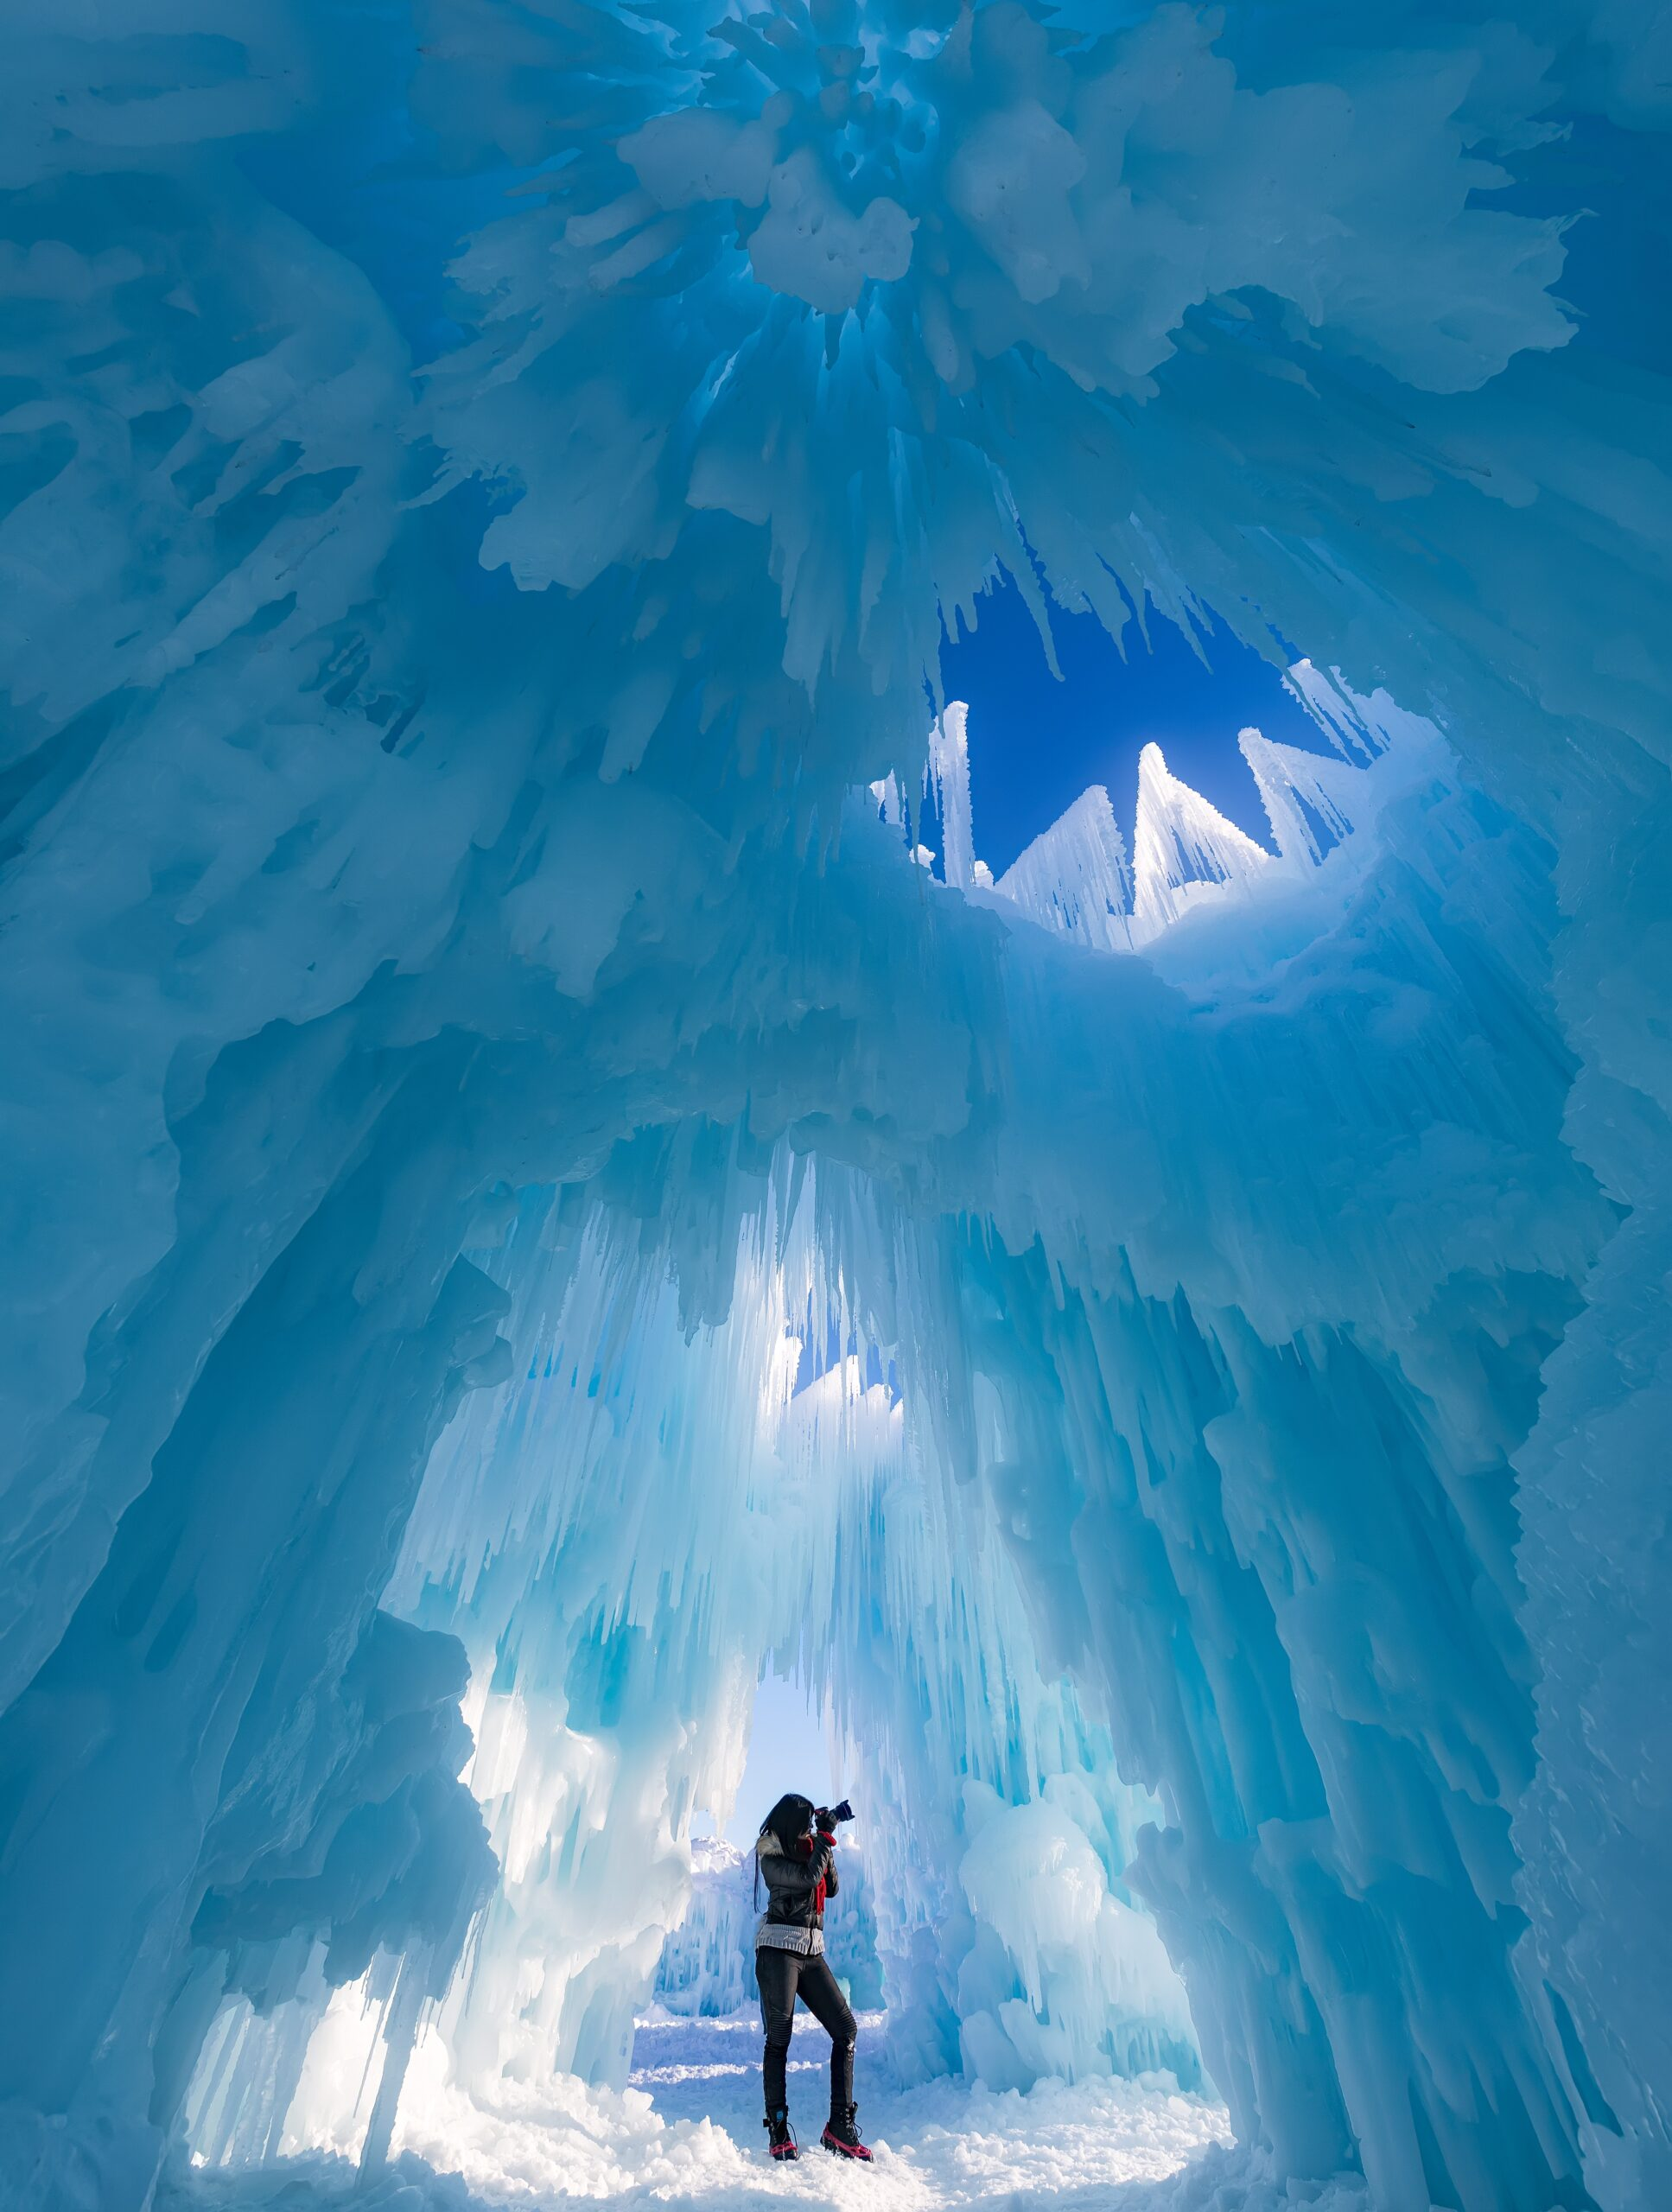 Woman in Ice Castles